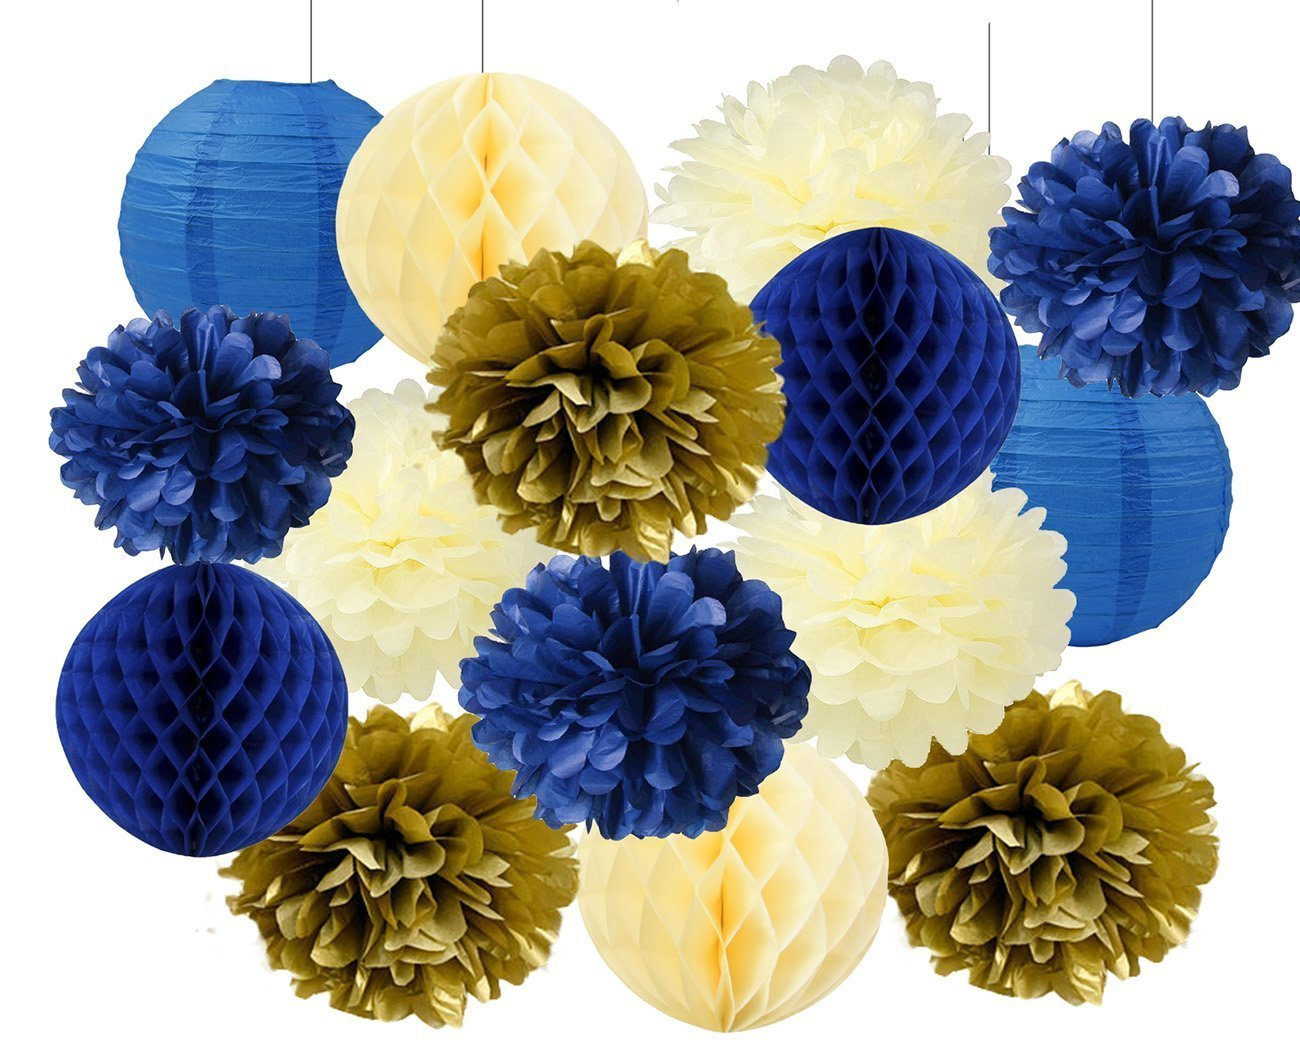 Royal Blue And Gold Baby Shower Decorations Packages from sc02.alicdn.com